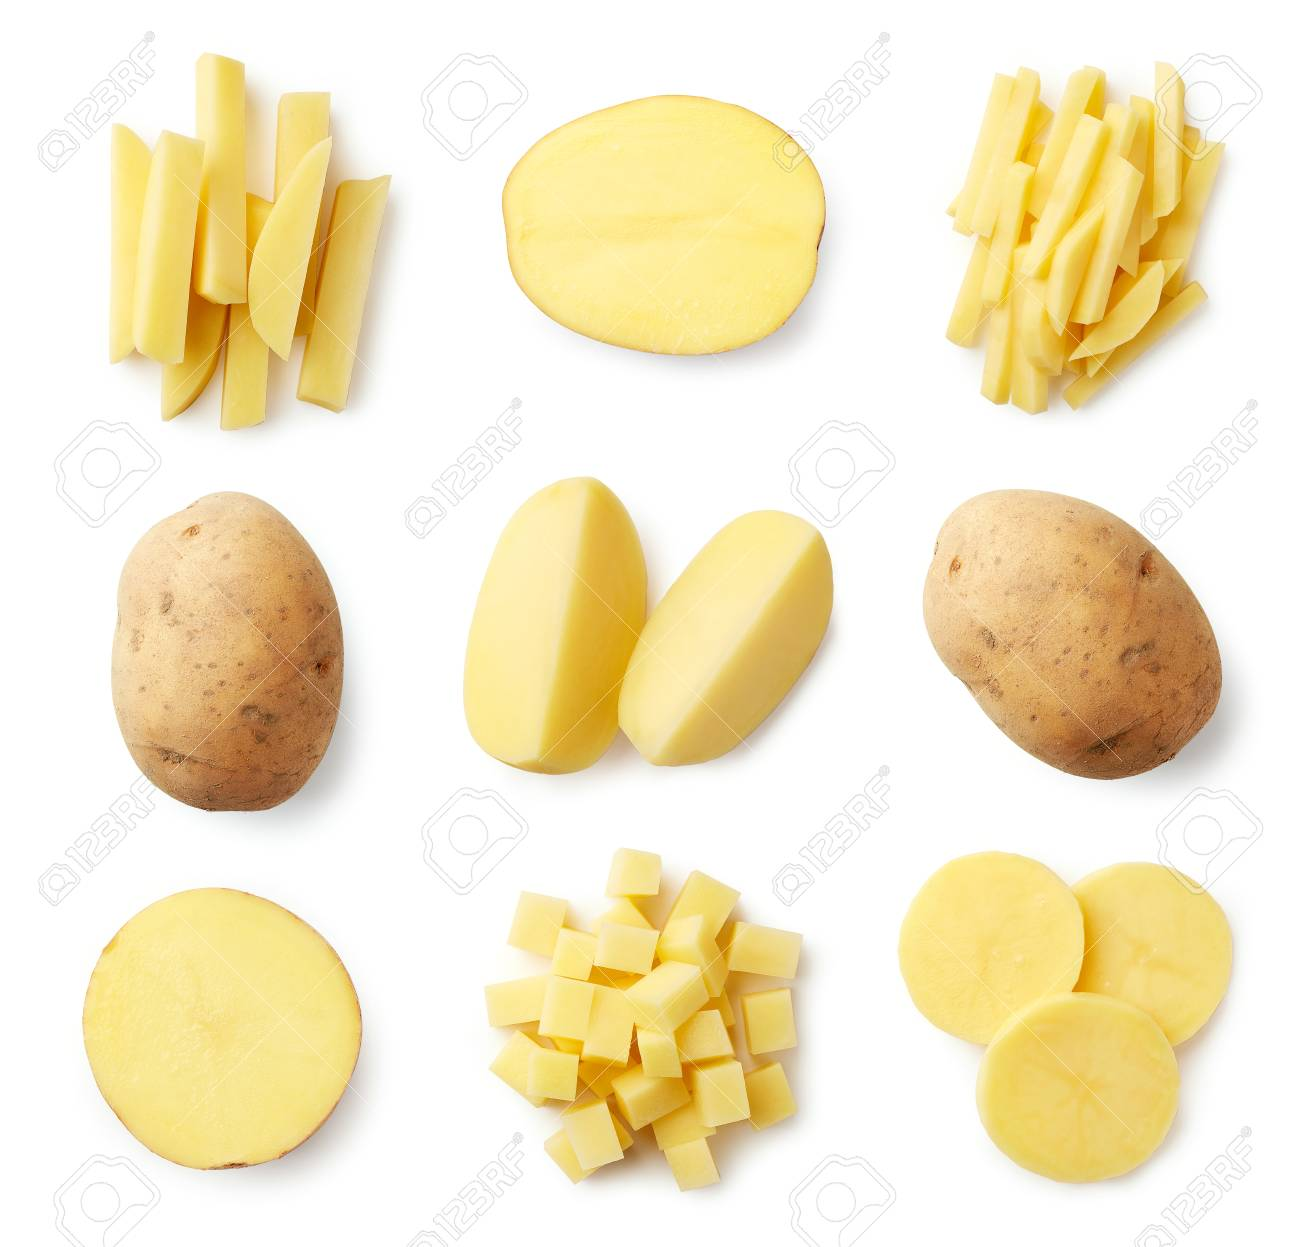 Set of fresh whole and sliced potatoes isolated on white background. Top view - 110914550